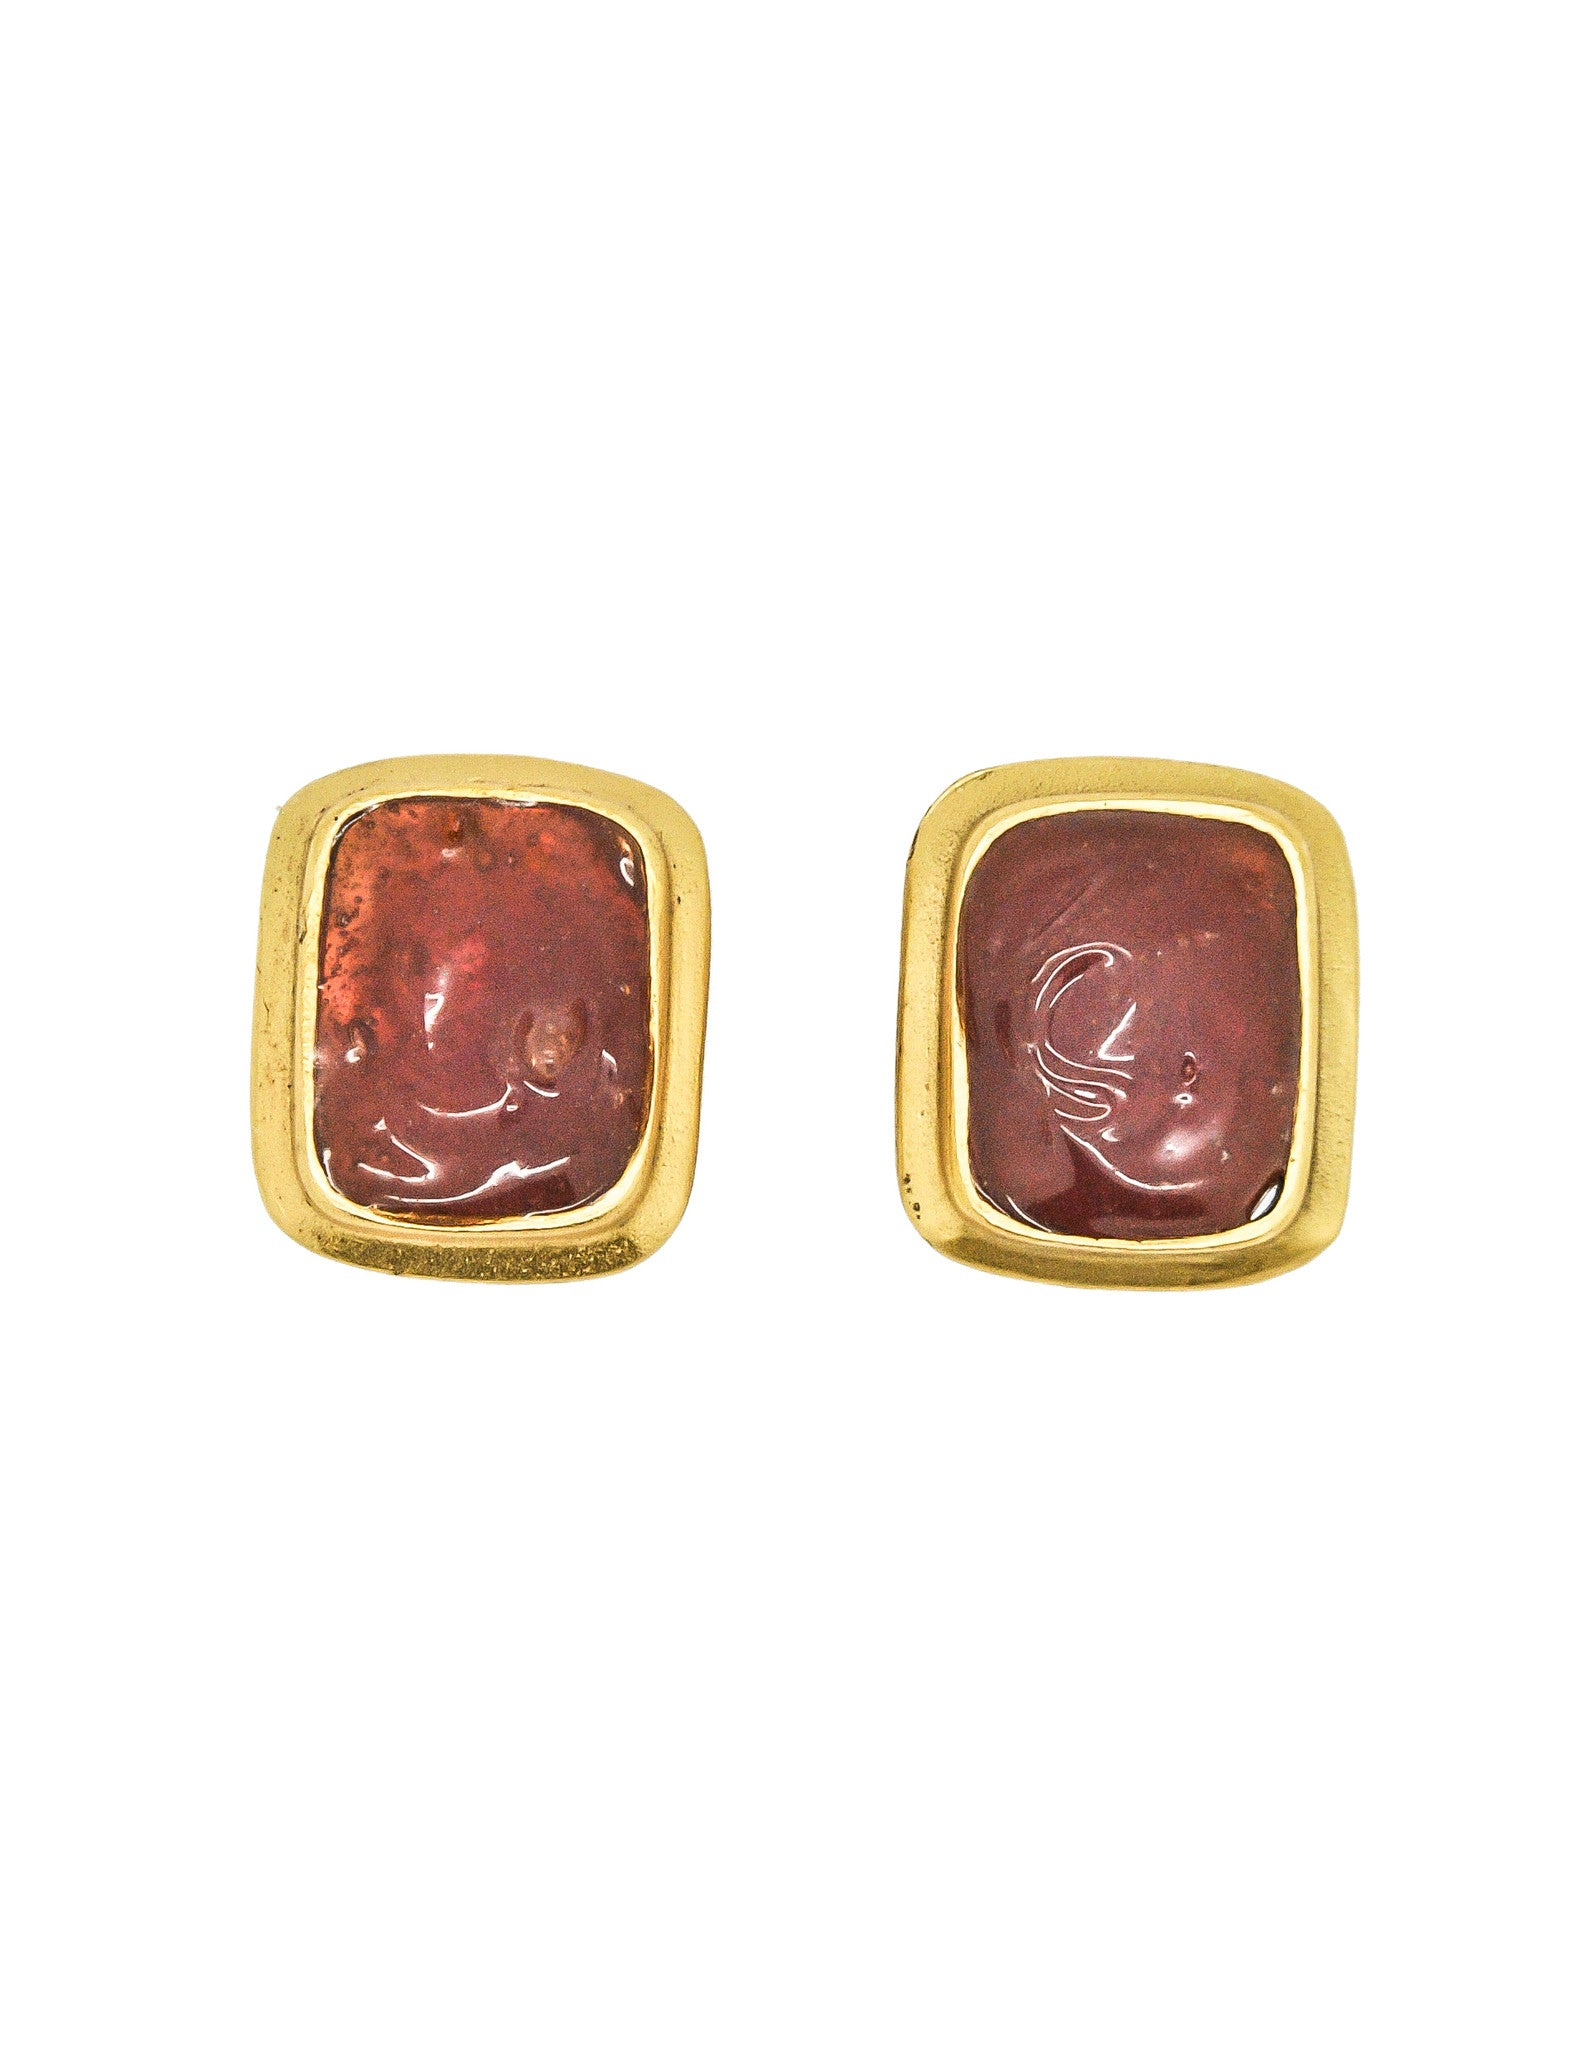 YSL Vintage Gold Resin Earrings - Amarcord Vintage Fashion  - 1